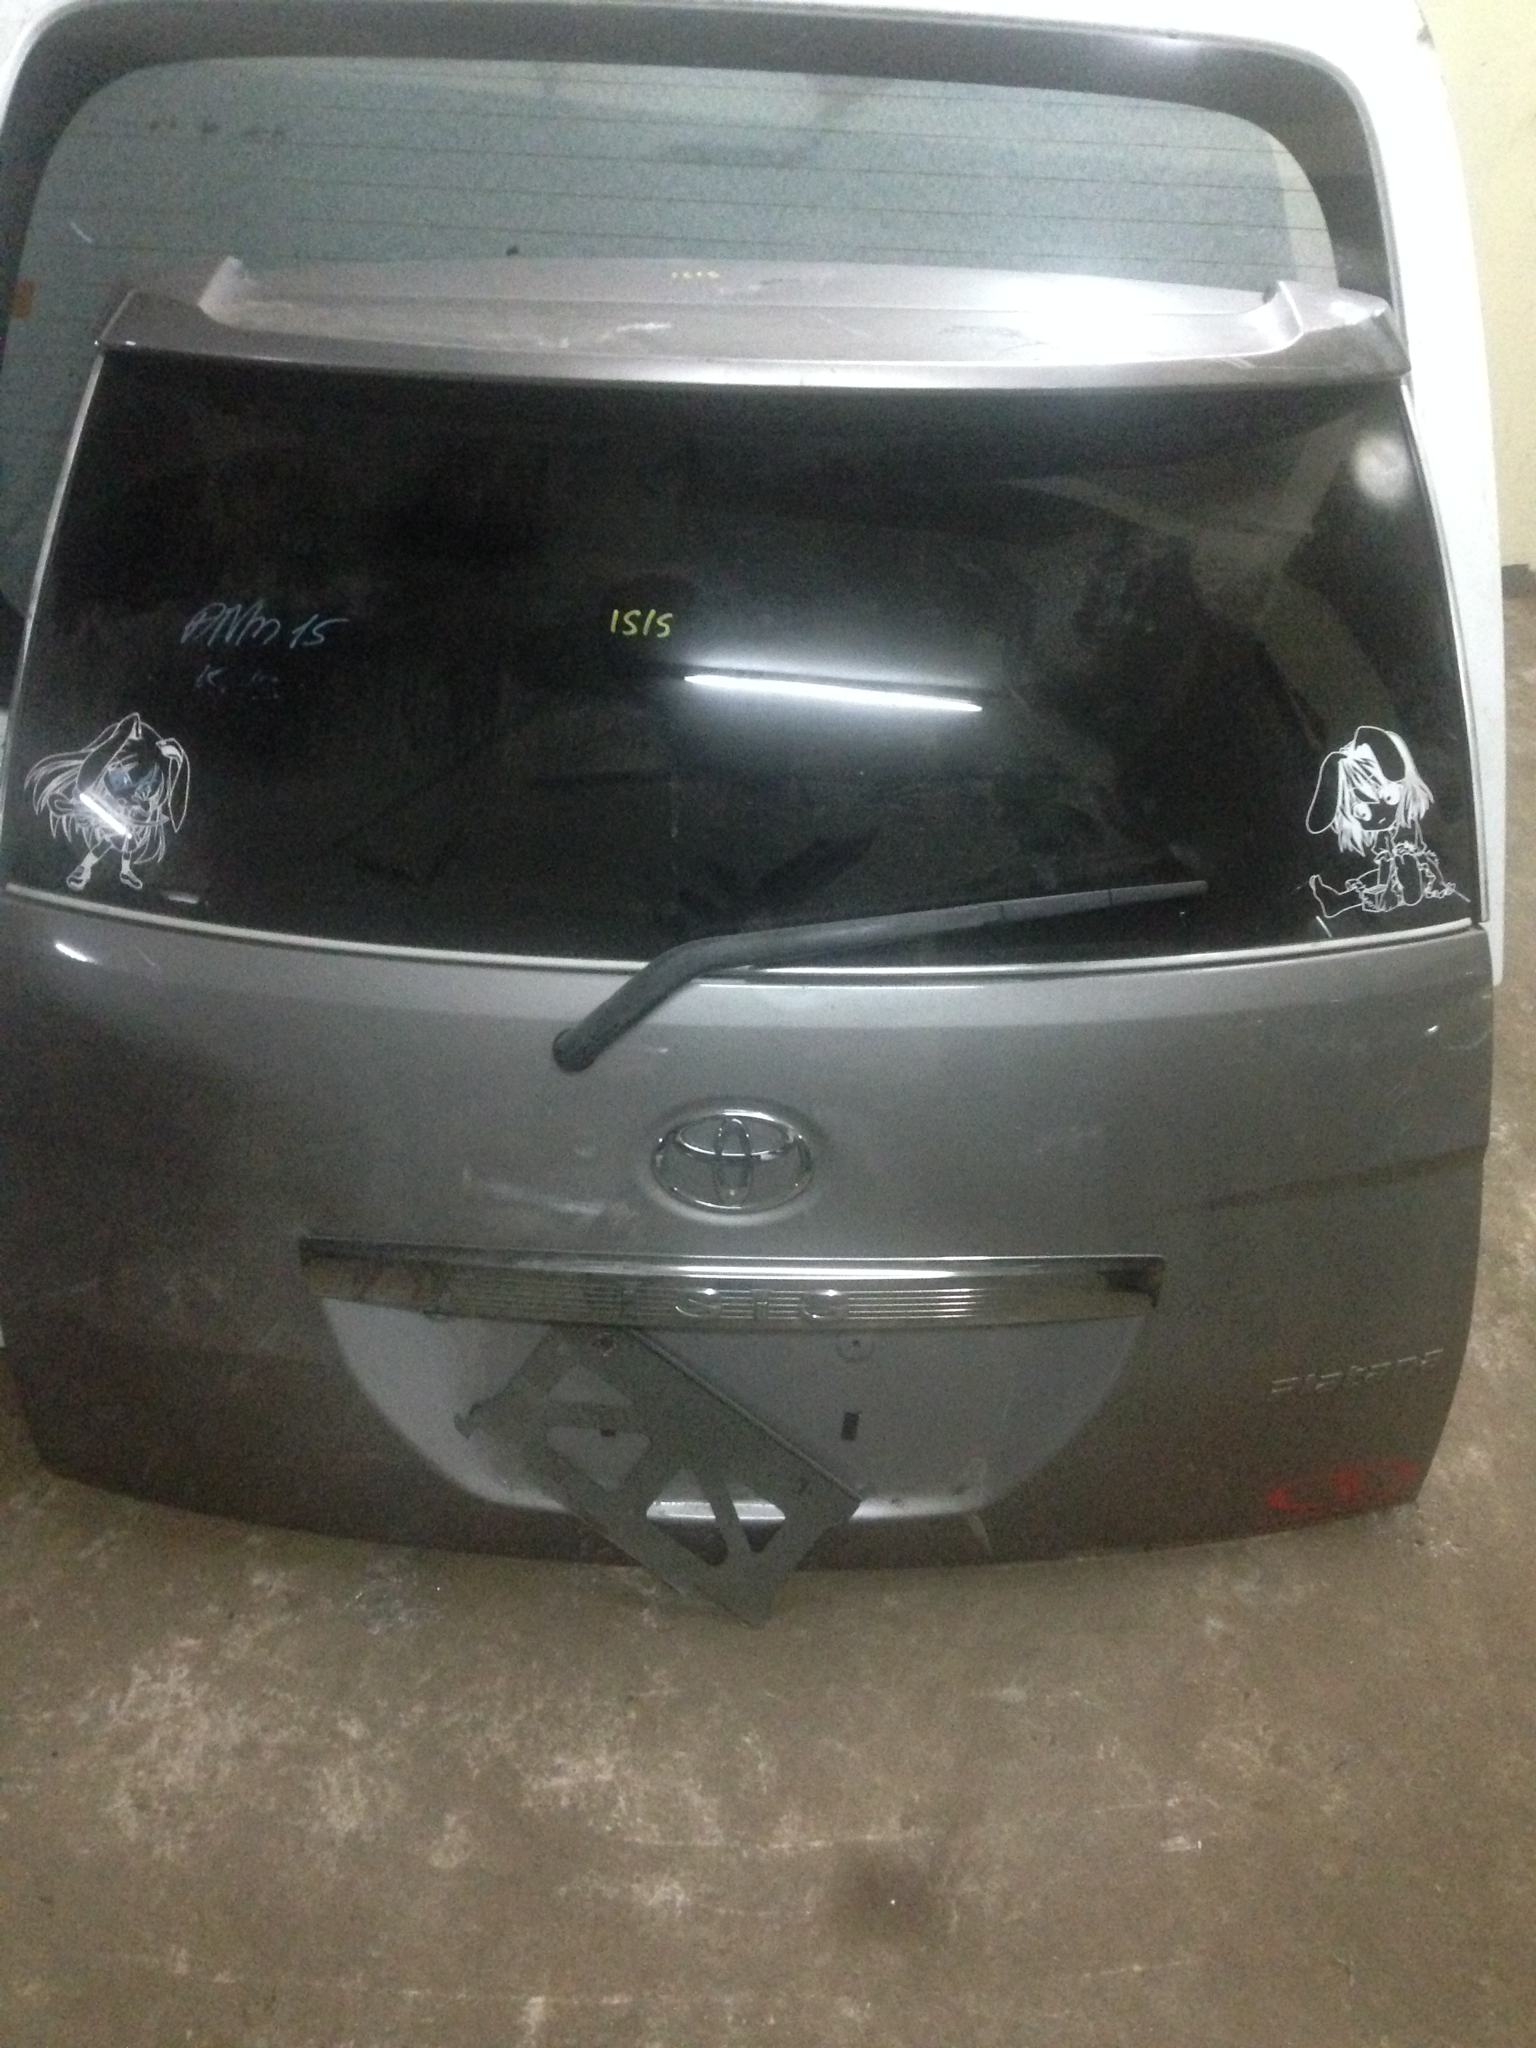 Toyota Isis boot 00962